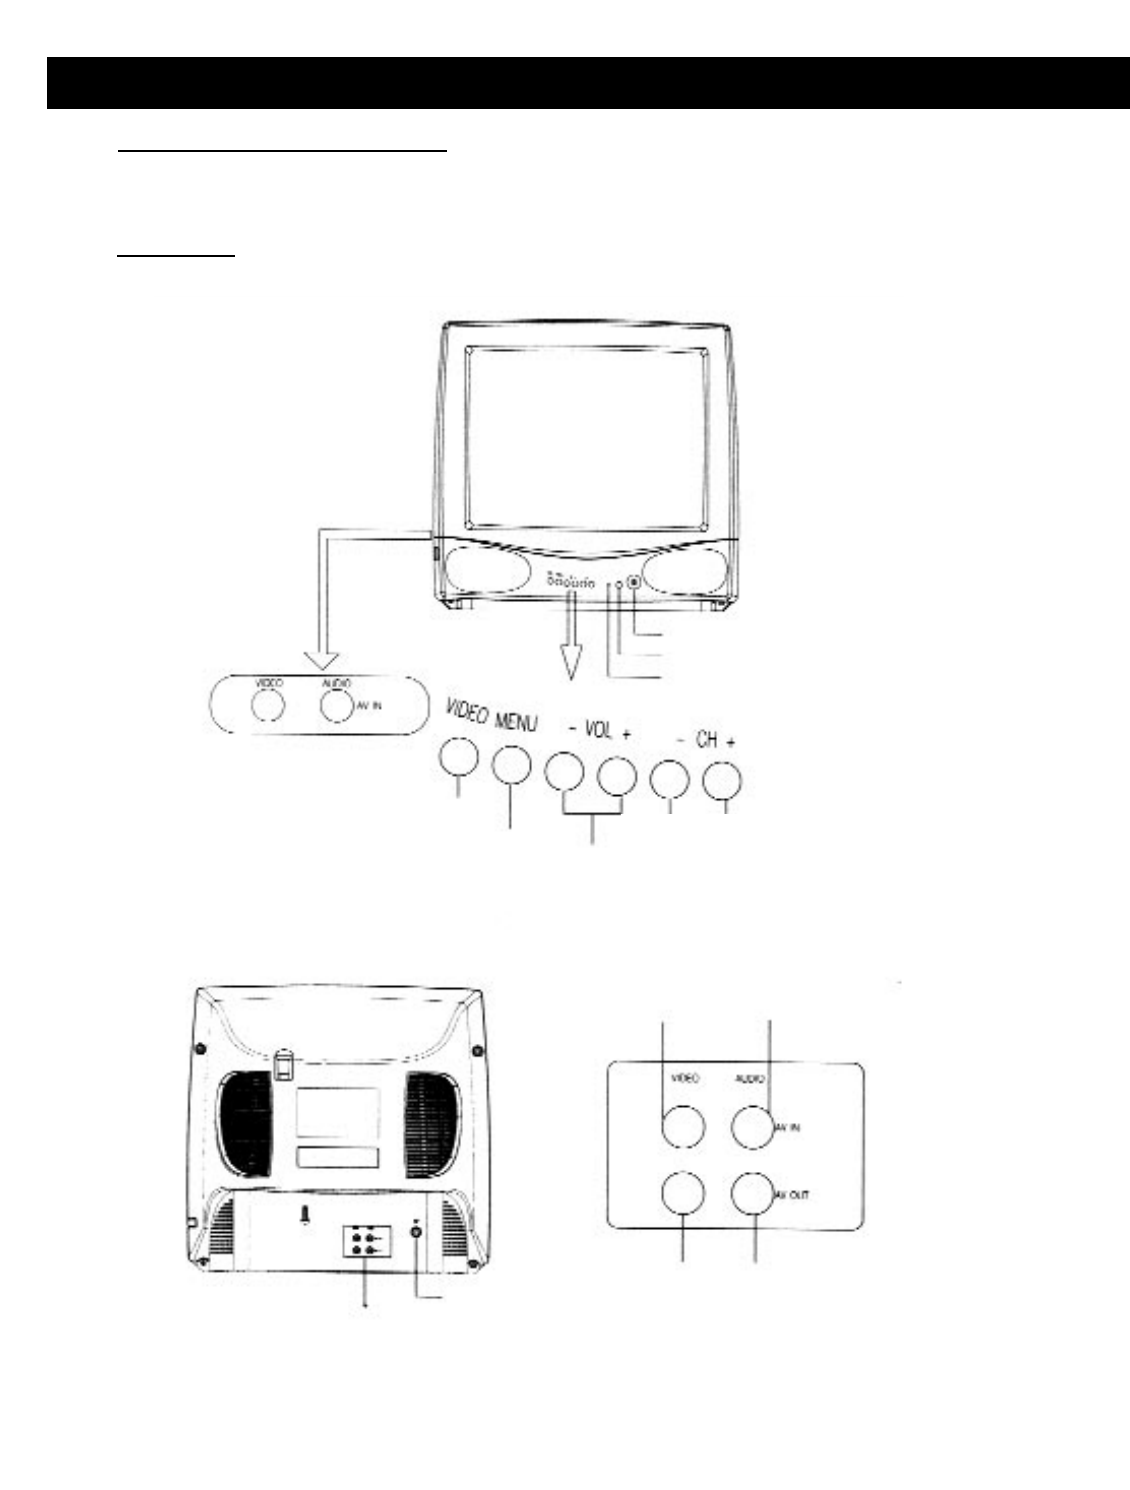 page 9 of apex digital flat panel television at2002 user guide